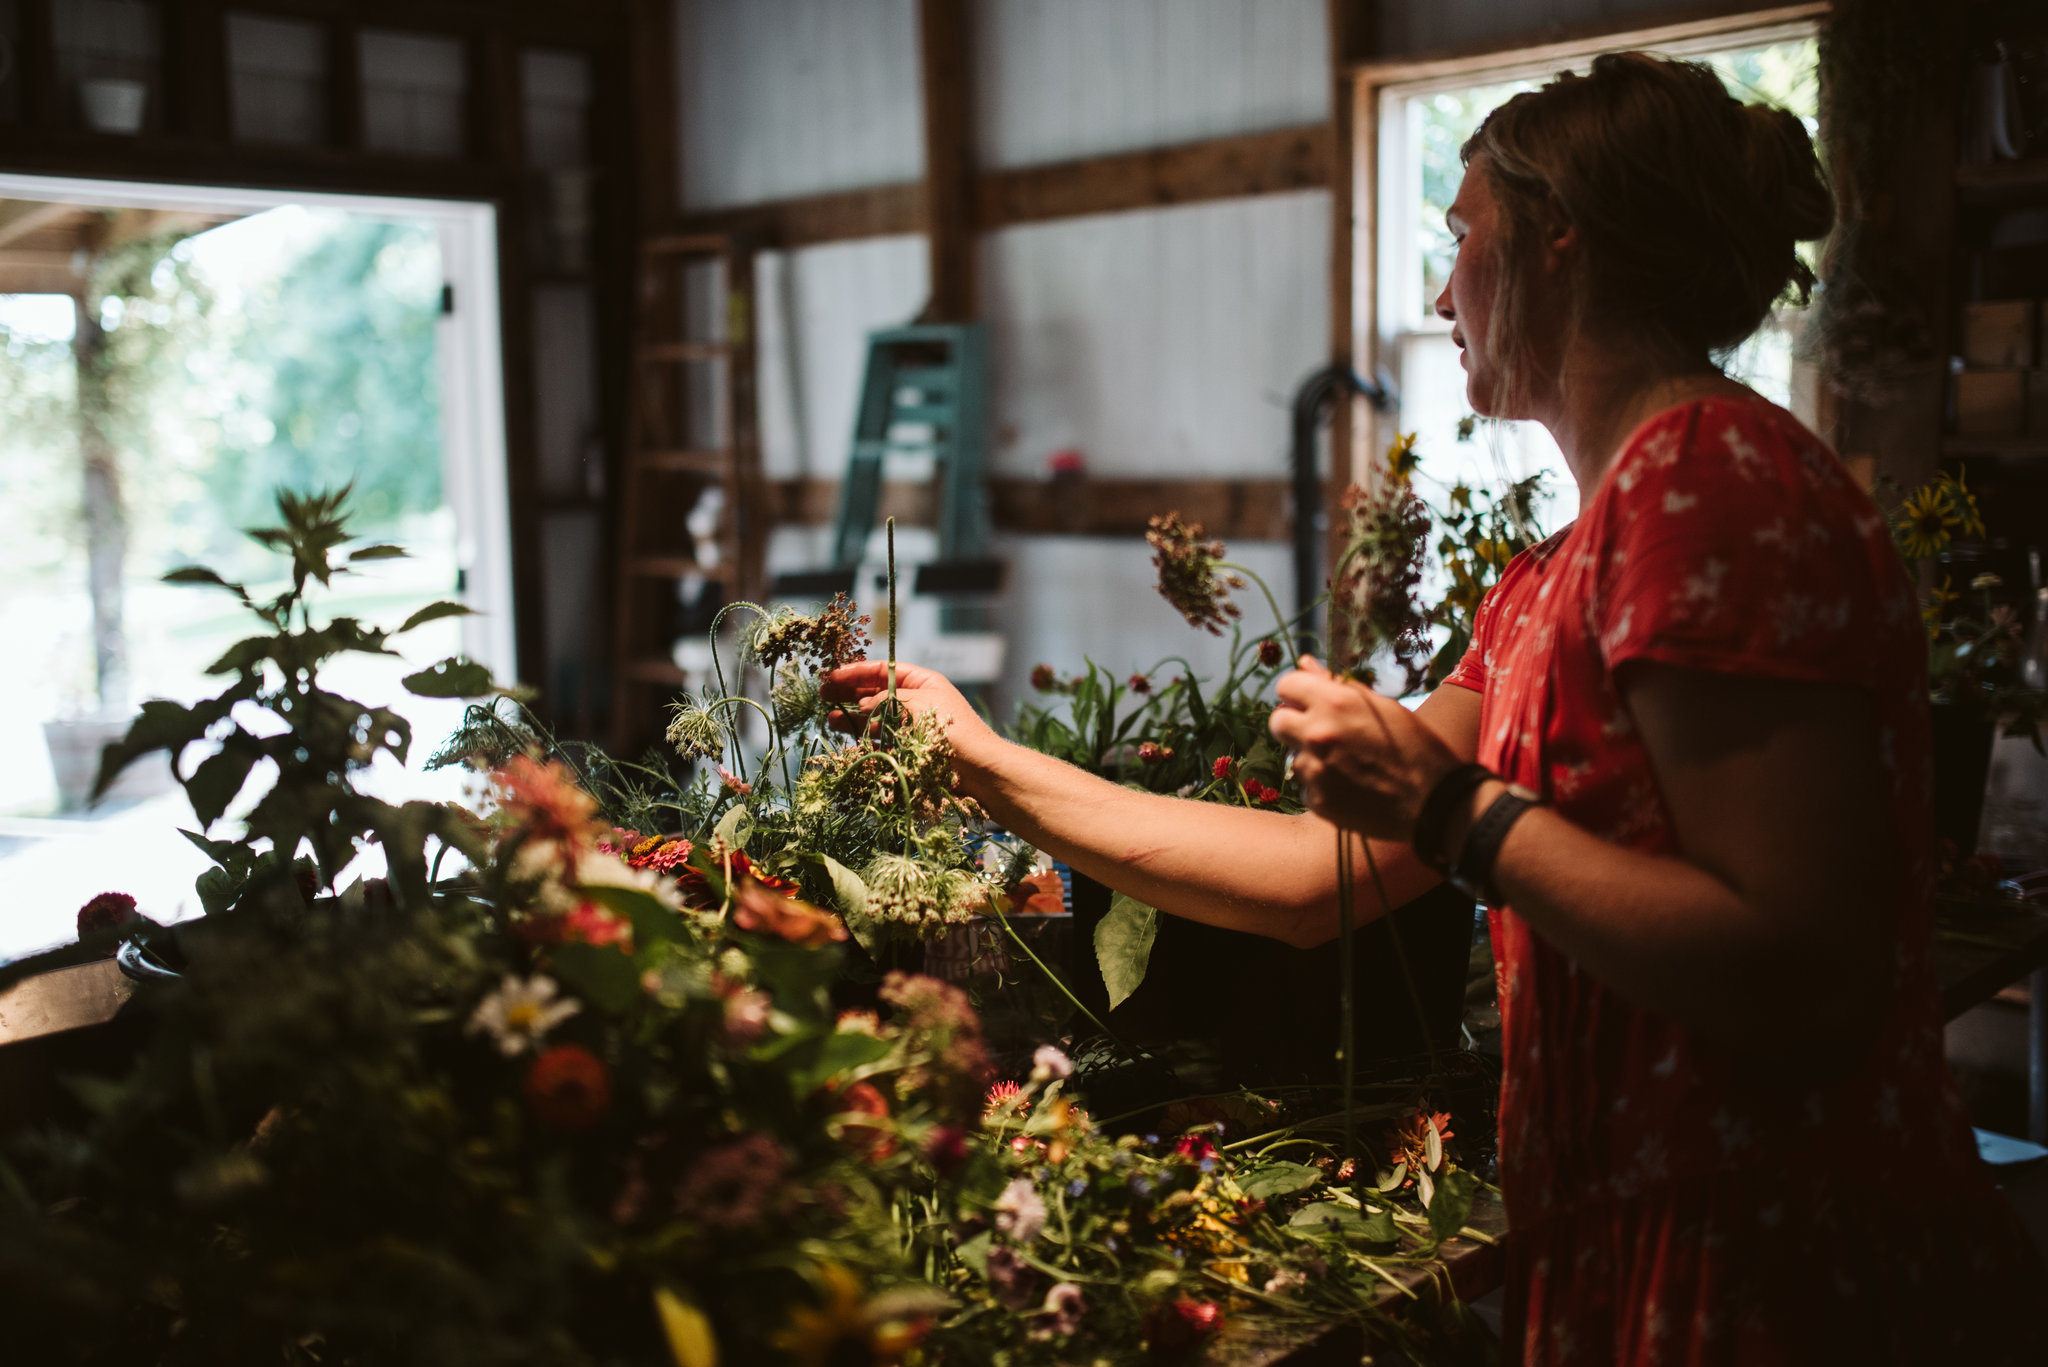 Rocklands Farm, Maryland, Intimate Wedding, Baltimore Wedding Photographer, Sungold Flower Co, Rustic, Romantic, Barn Wedding, Flower Arrangements Being Finishing, Final Touches